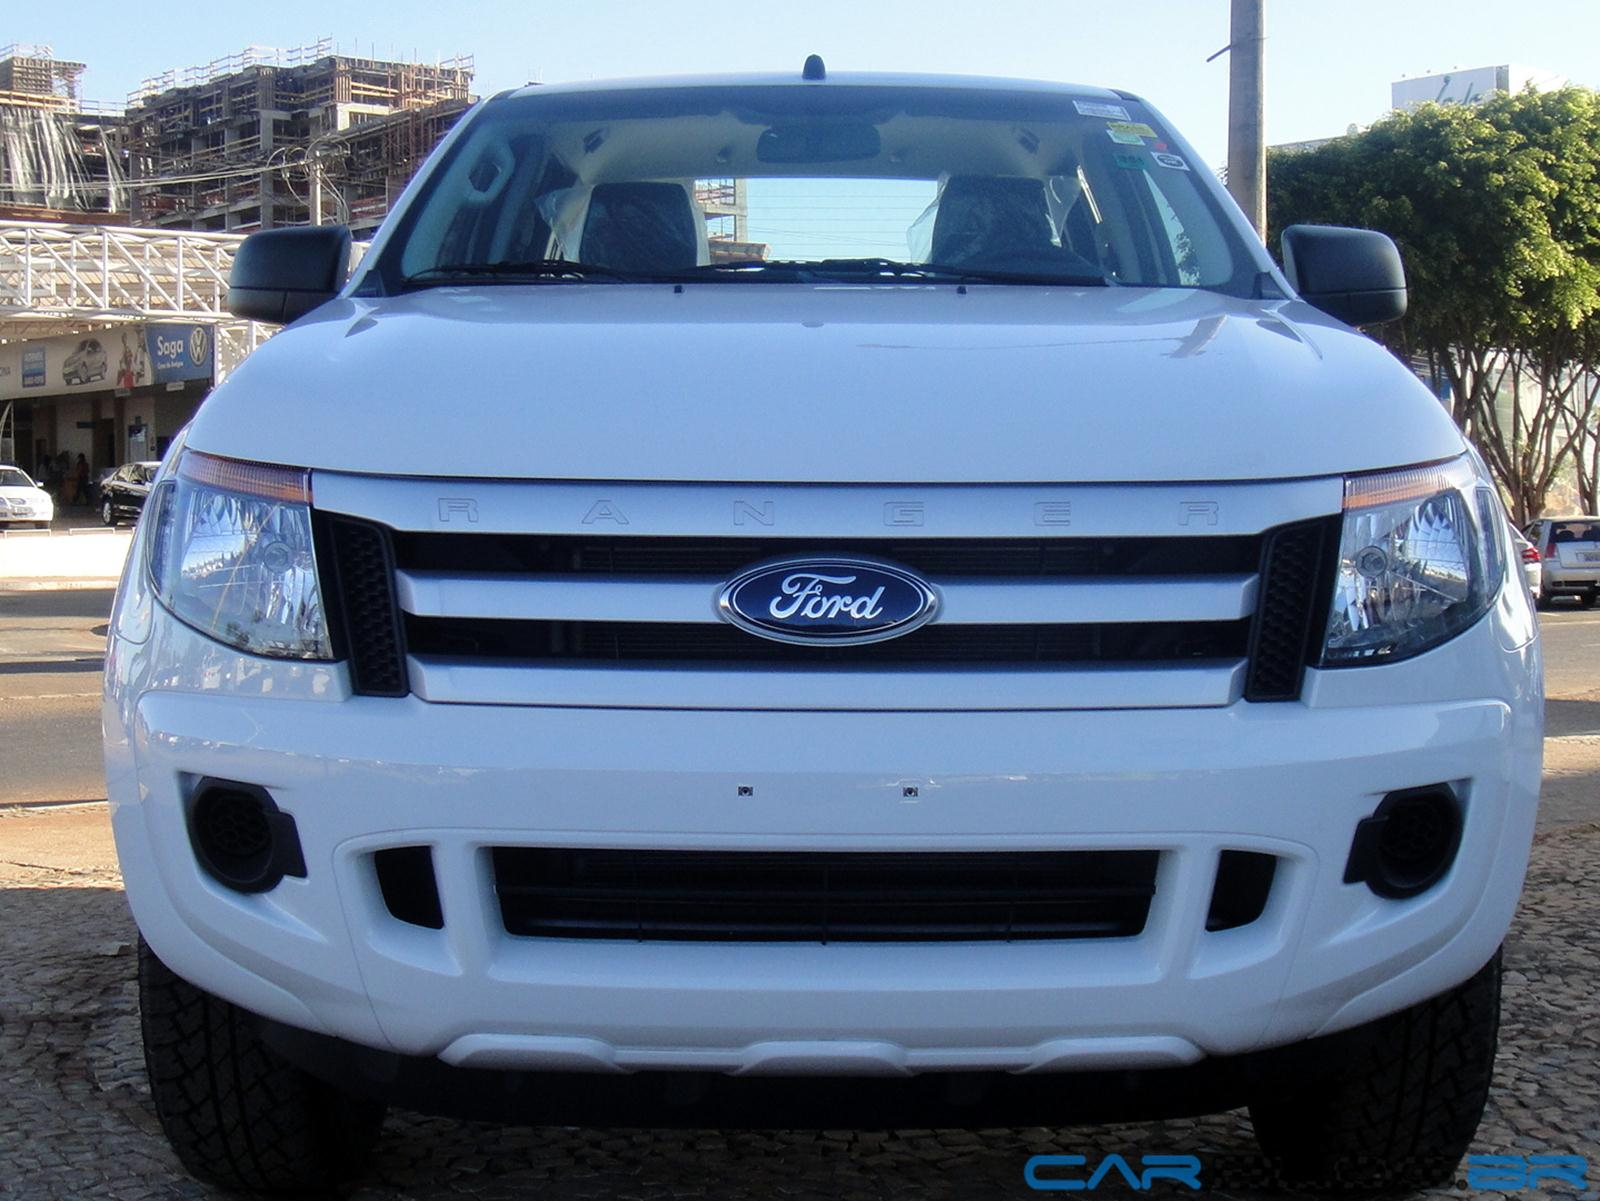 Ford Ranger 2.5 2013 photo - 12